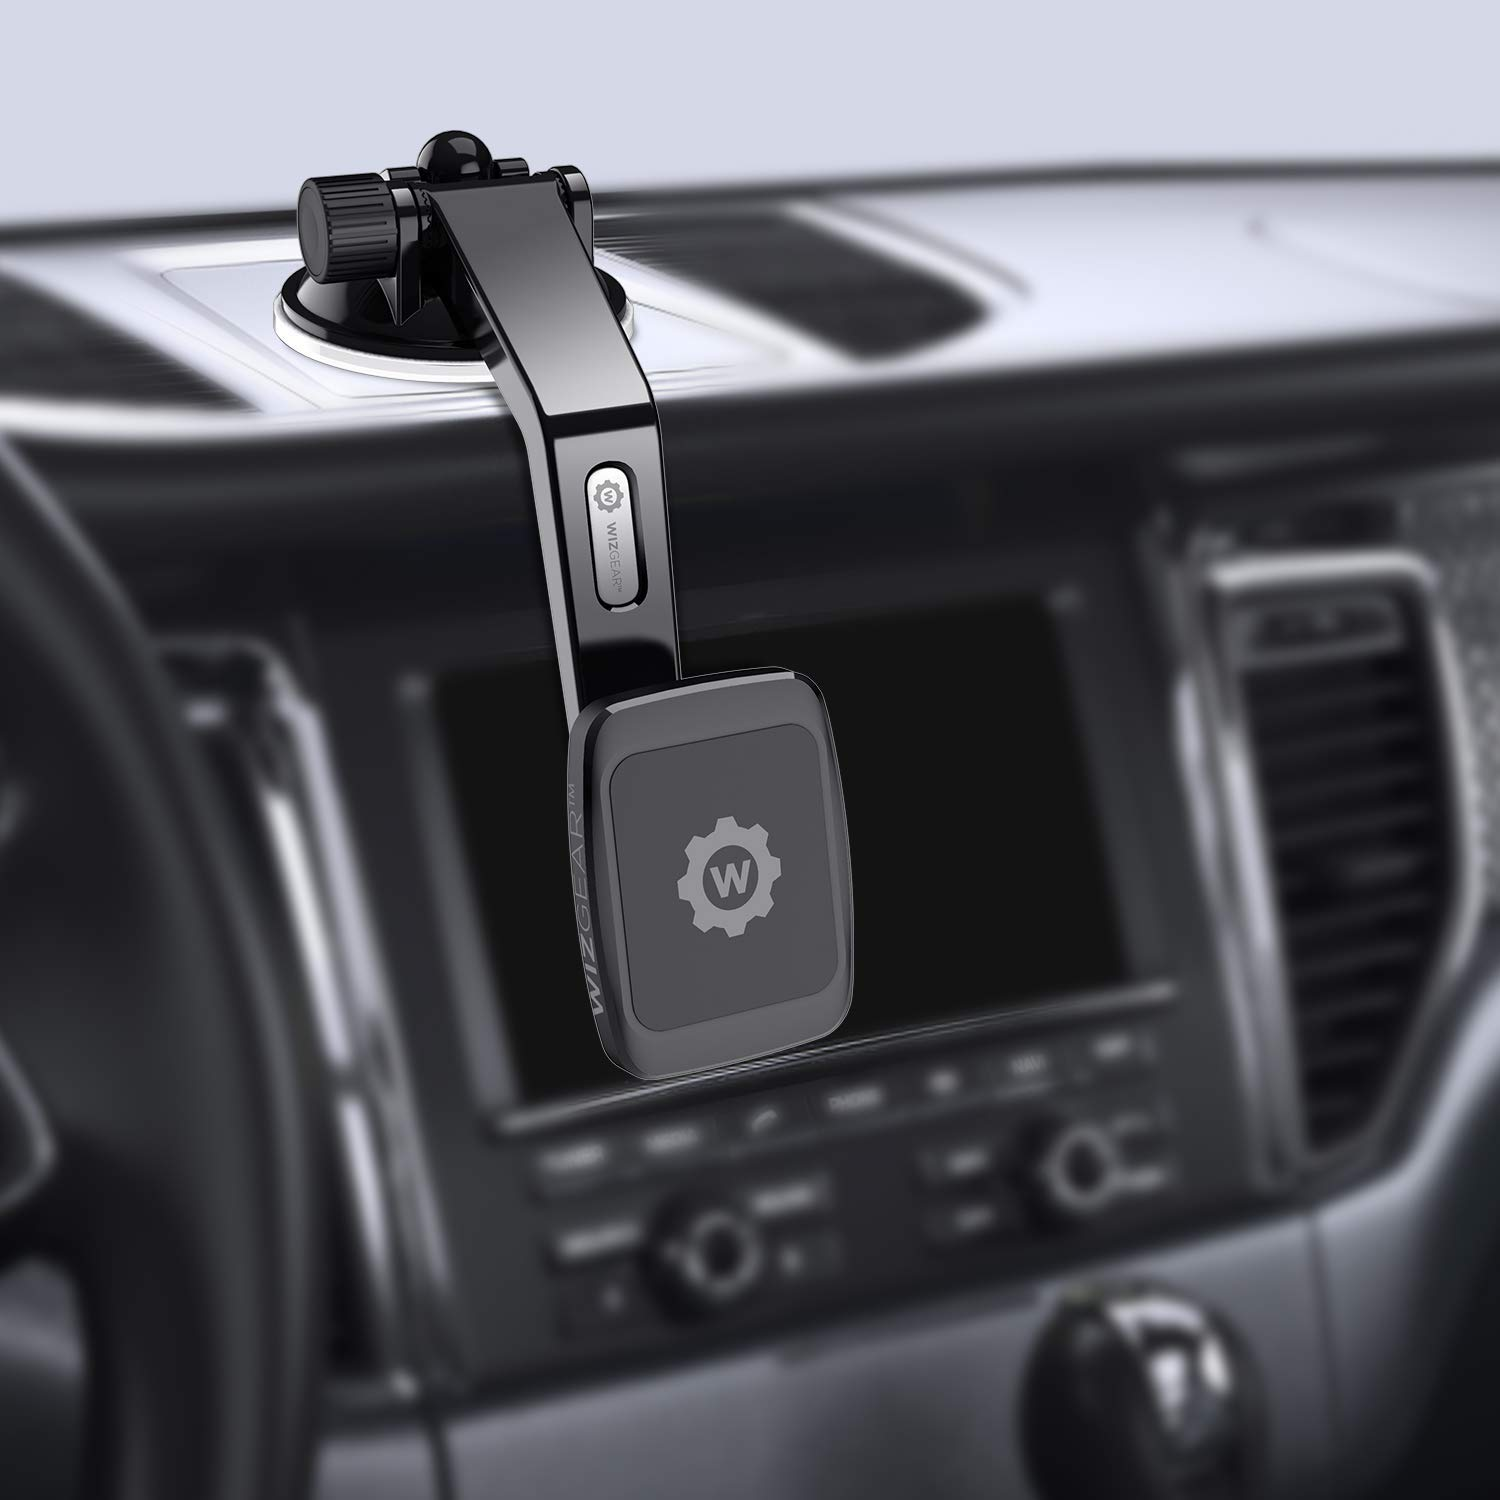 Magnetic Mount Magnetic Cell Phone Mount WizGear Universal Dashboard Curved Magnetic Phone Car Mount Holder for Cell Phones and Mini Tablets with Fast Swift-snap Technology